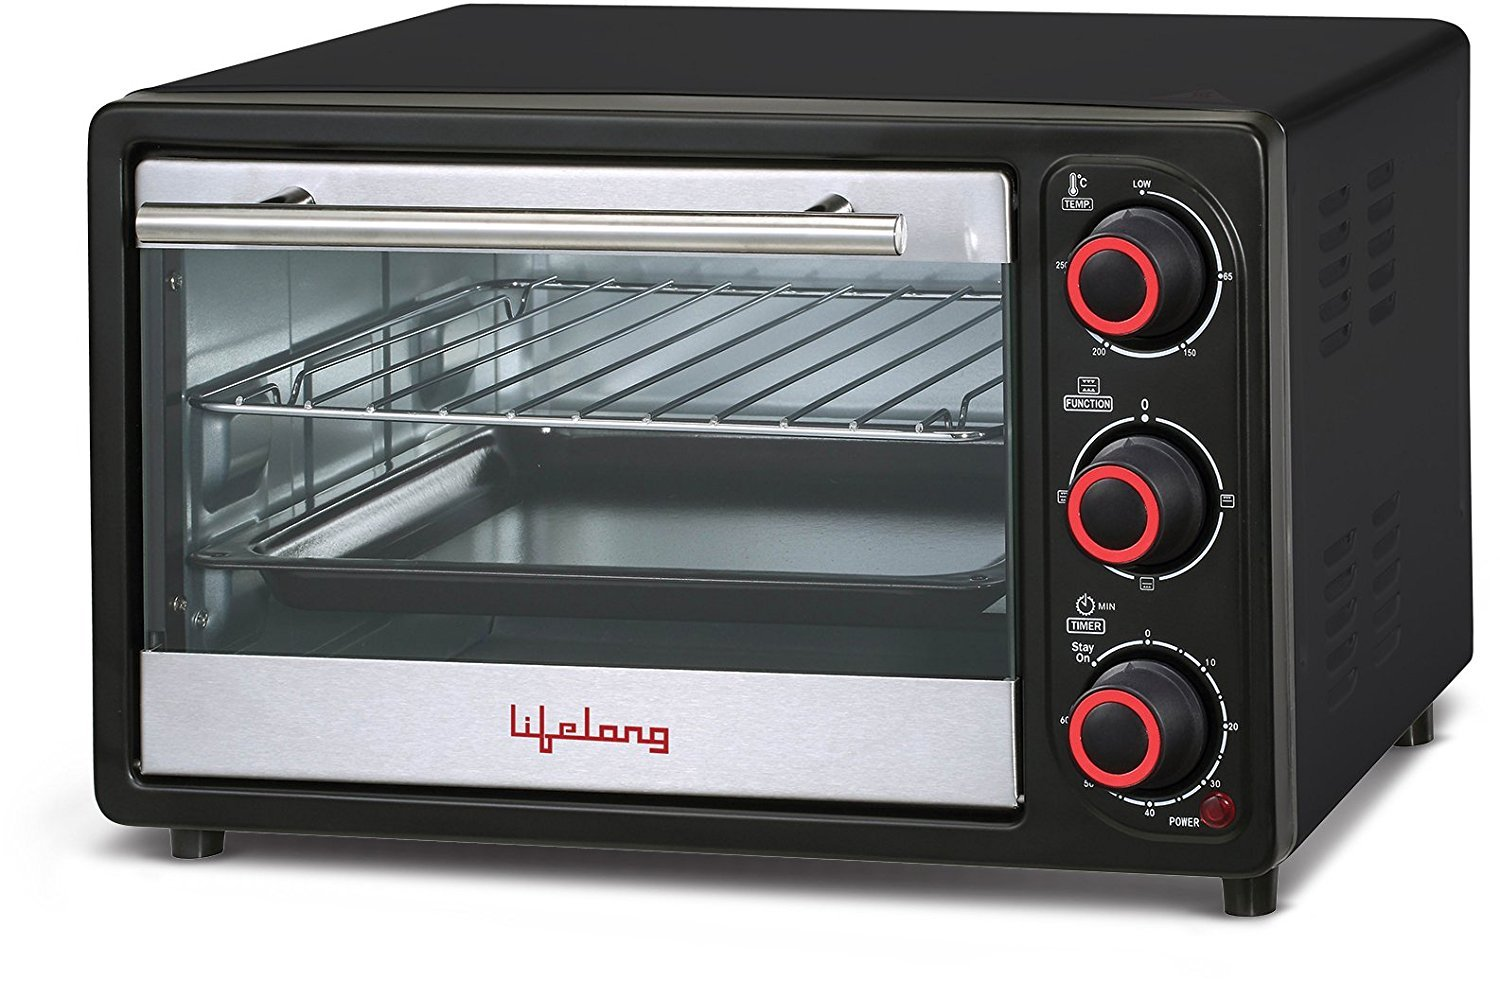 Lifelong 16L 1200-Watt Oven Toaster Griller, Black